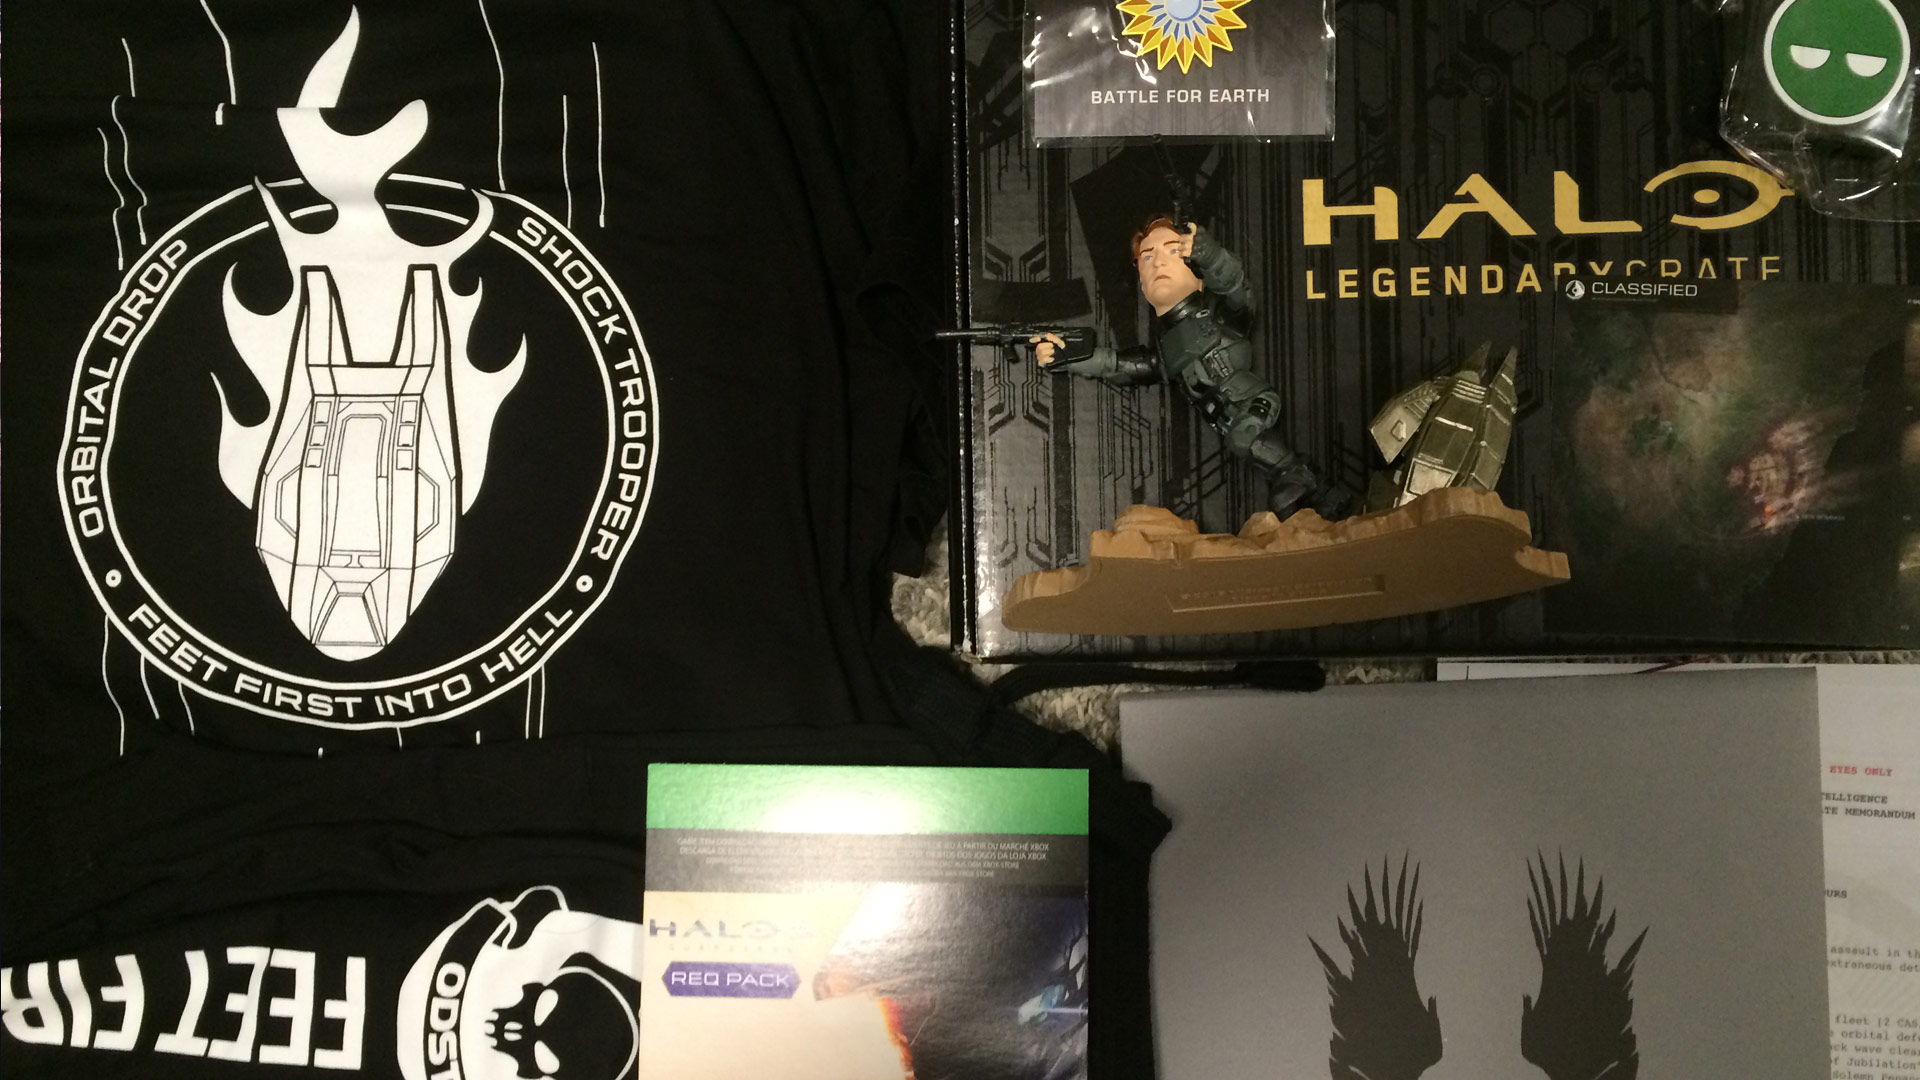 Halo Legendary Loot Crate: ODST Unboxing Review